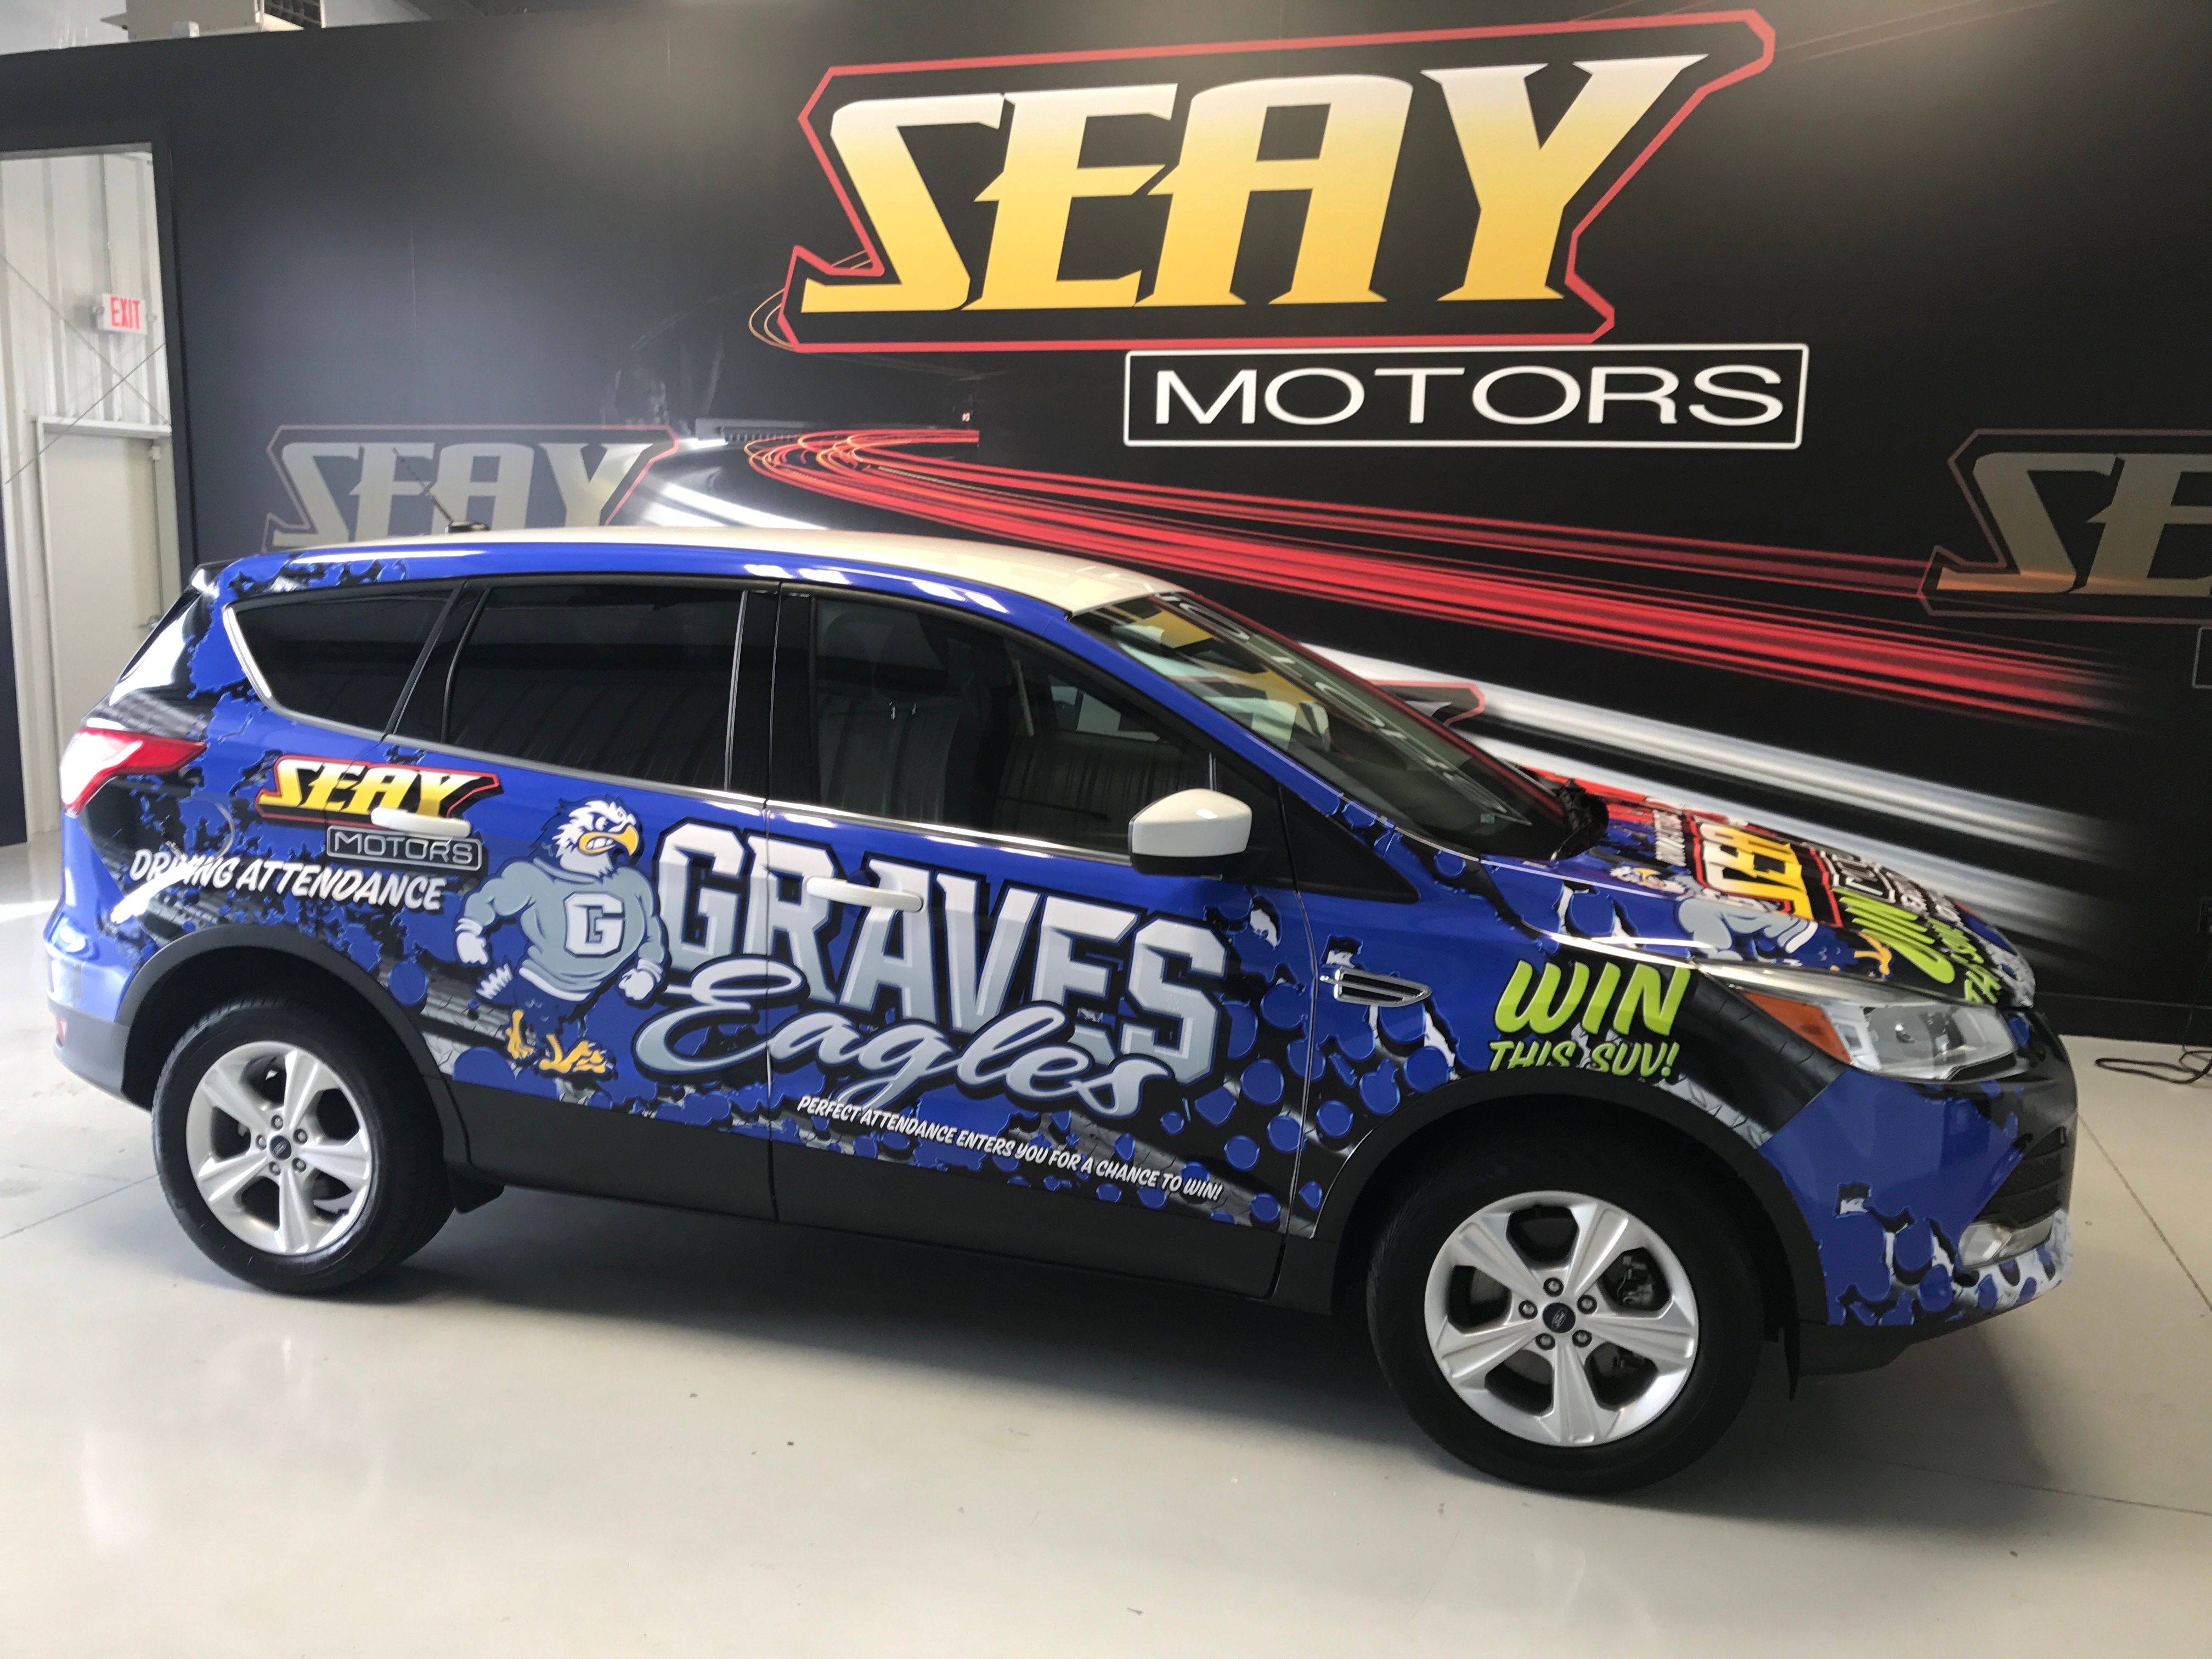 Seay Motors | New dealership in Mayfield, KY 42066